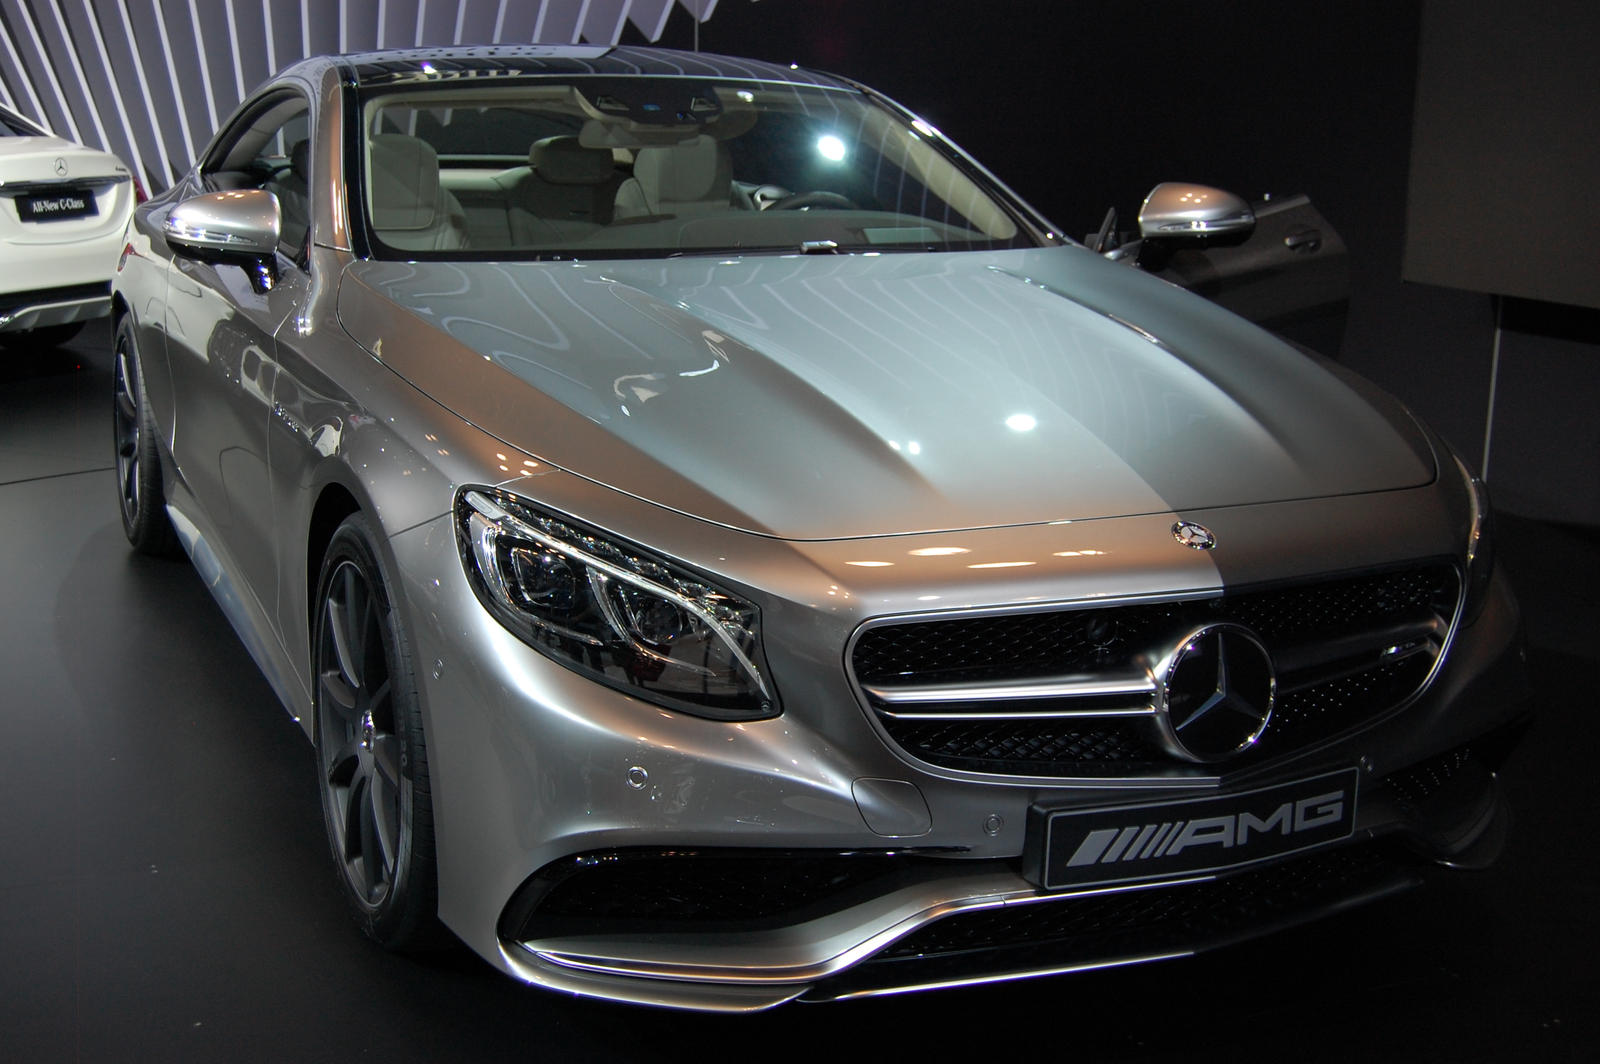 2015 mercedes benz s63 amg coupe i by hardrocker78 on for 2015 mercedes benz s63